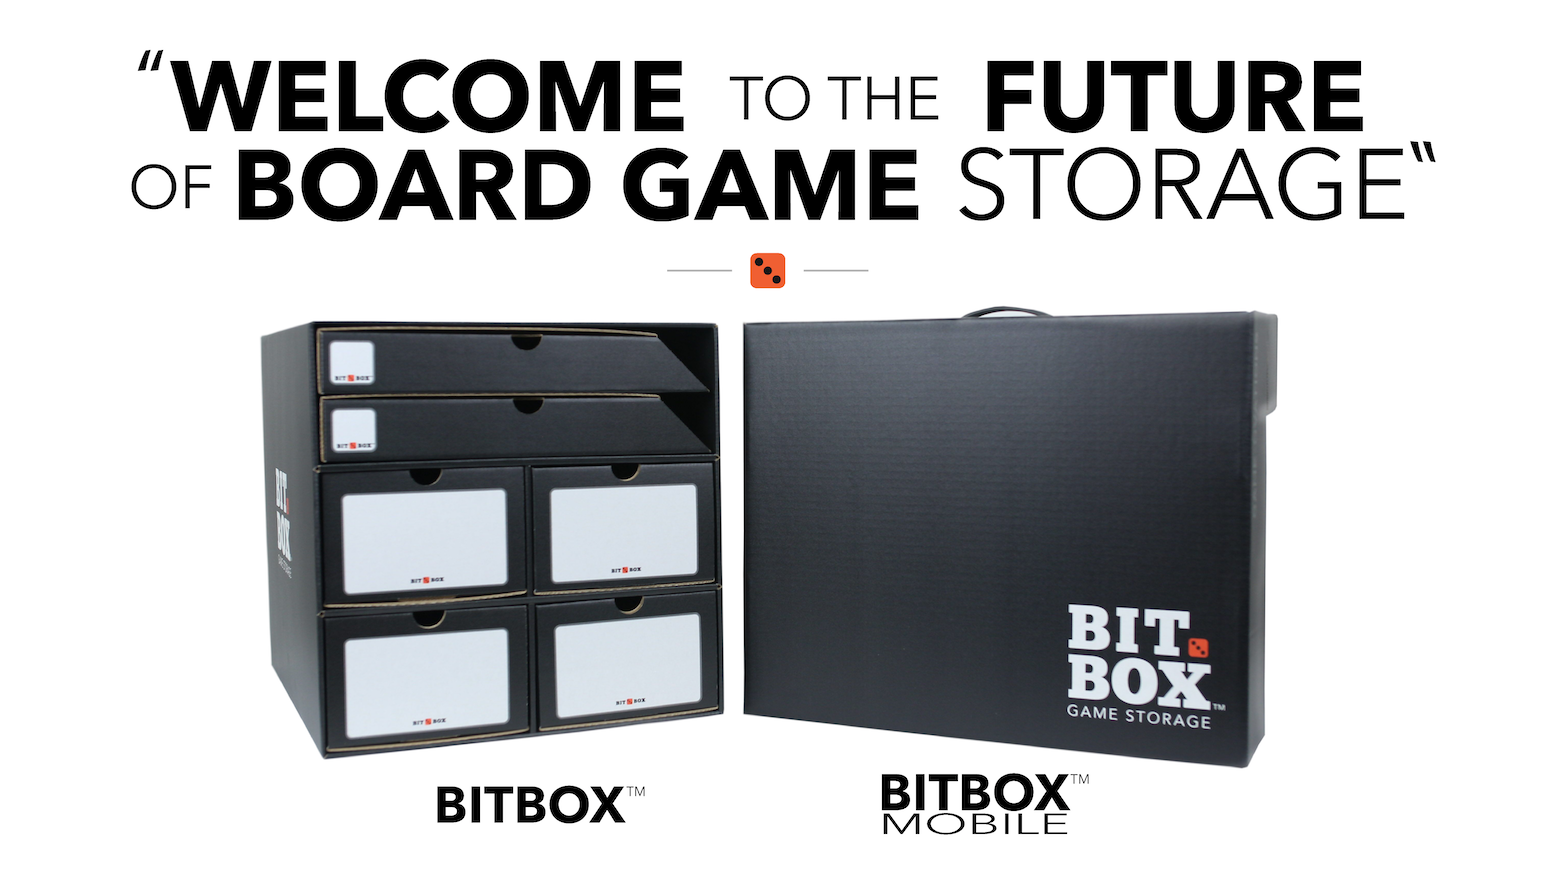 The future of board game storage. A space saving, easy traveling, super affordable, board game storage solution.